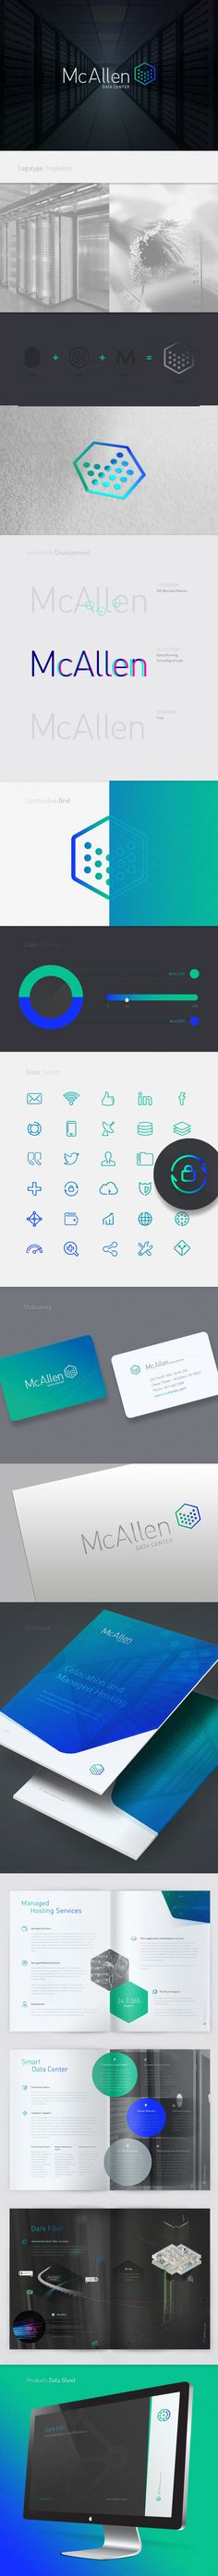 McAllen Data Center Branding by Lucas Gomez Freige